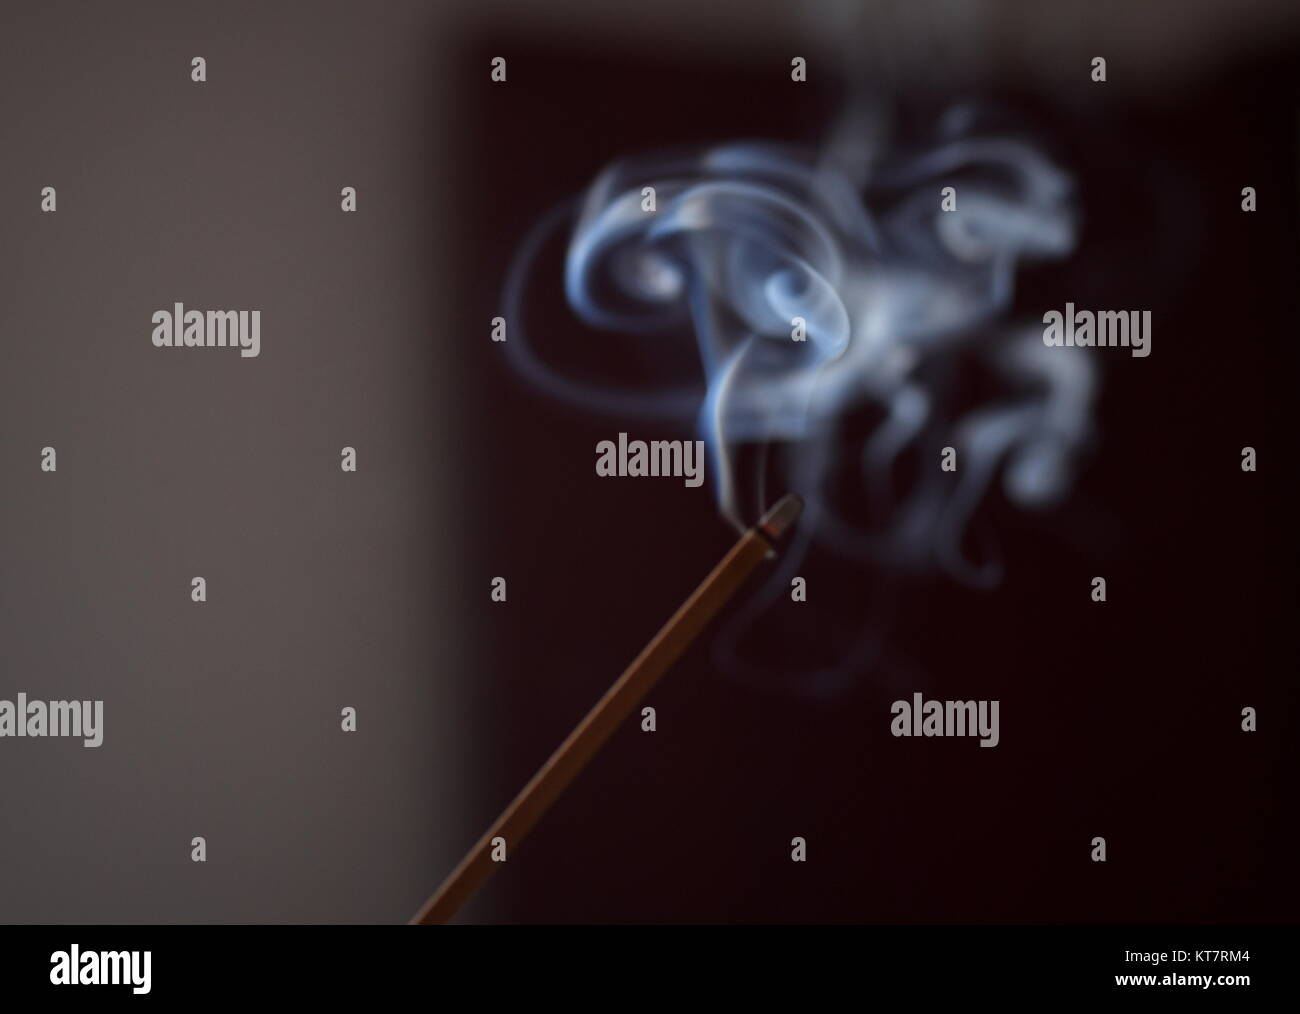 Incense smoke turbulent diffusion into eddies, an example of fluid dynamics and non lineal physics phenomena - Stock Image